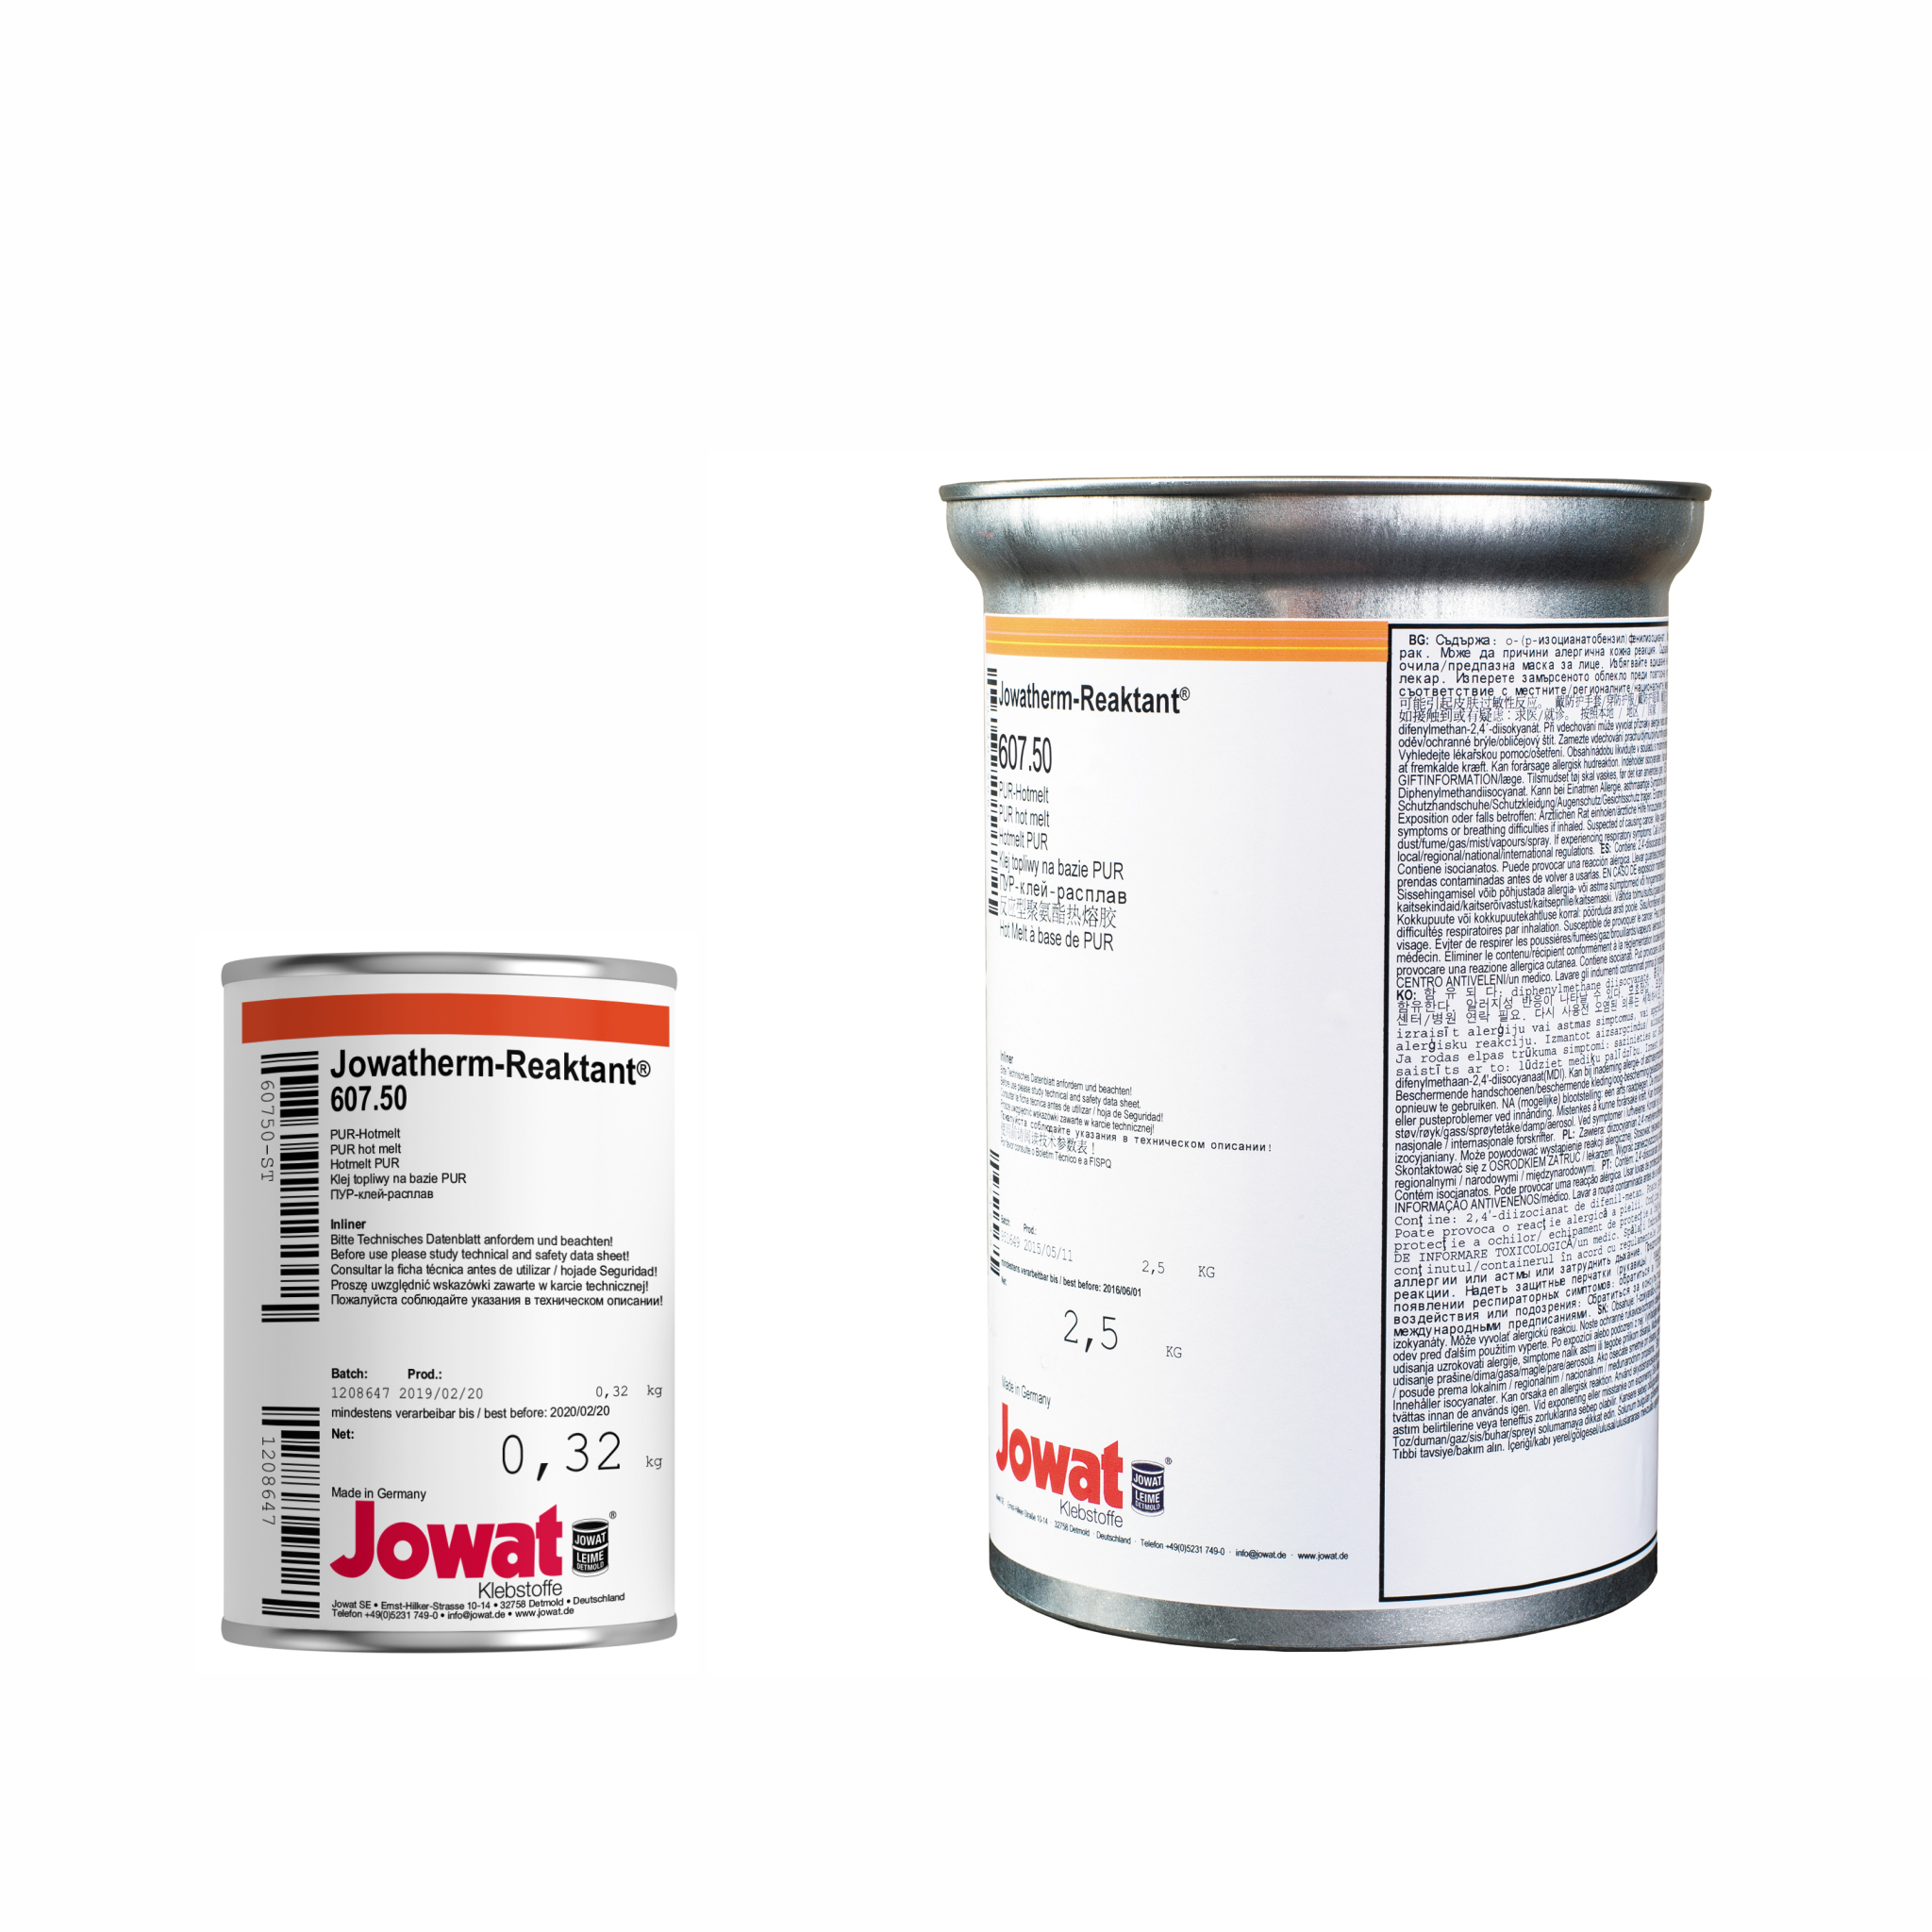 JOWATHERM 607.50 Nature - PUR Thermofusible